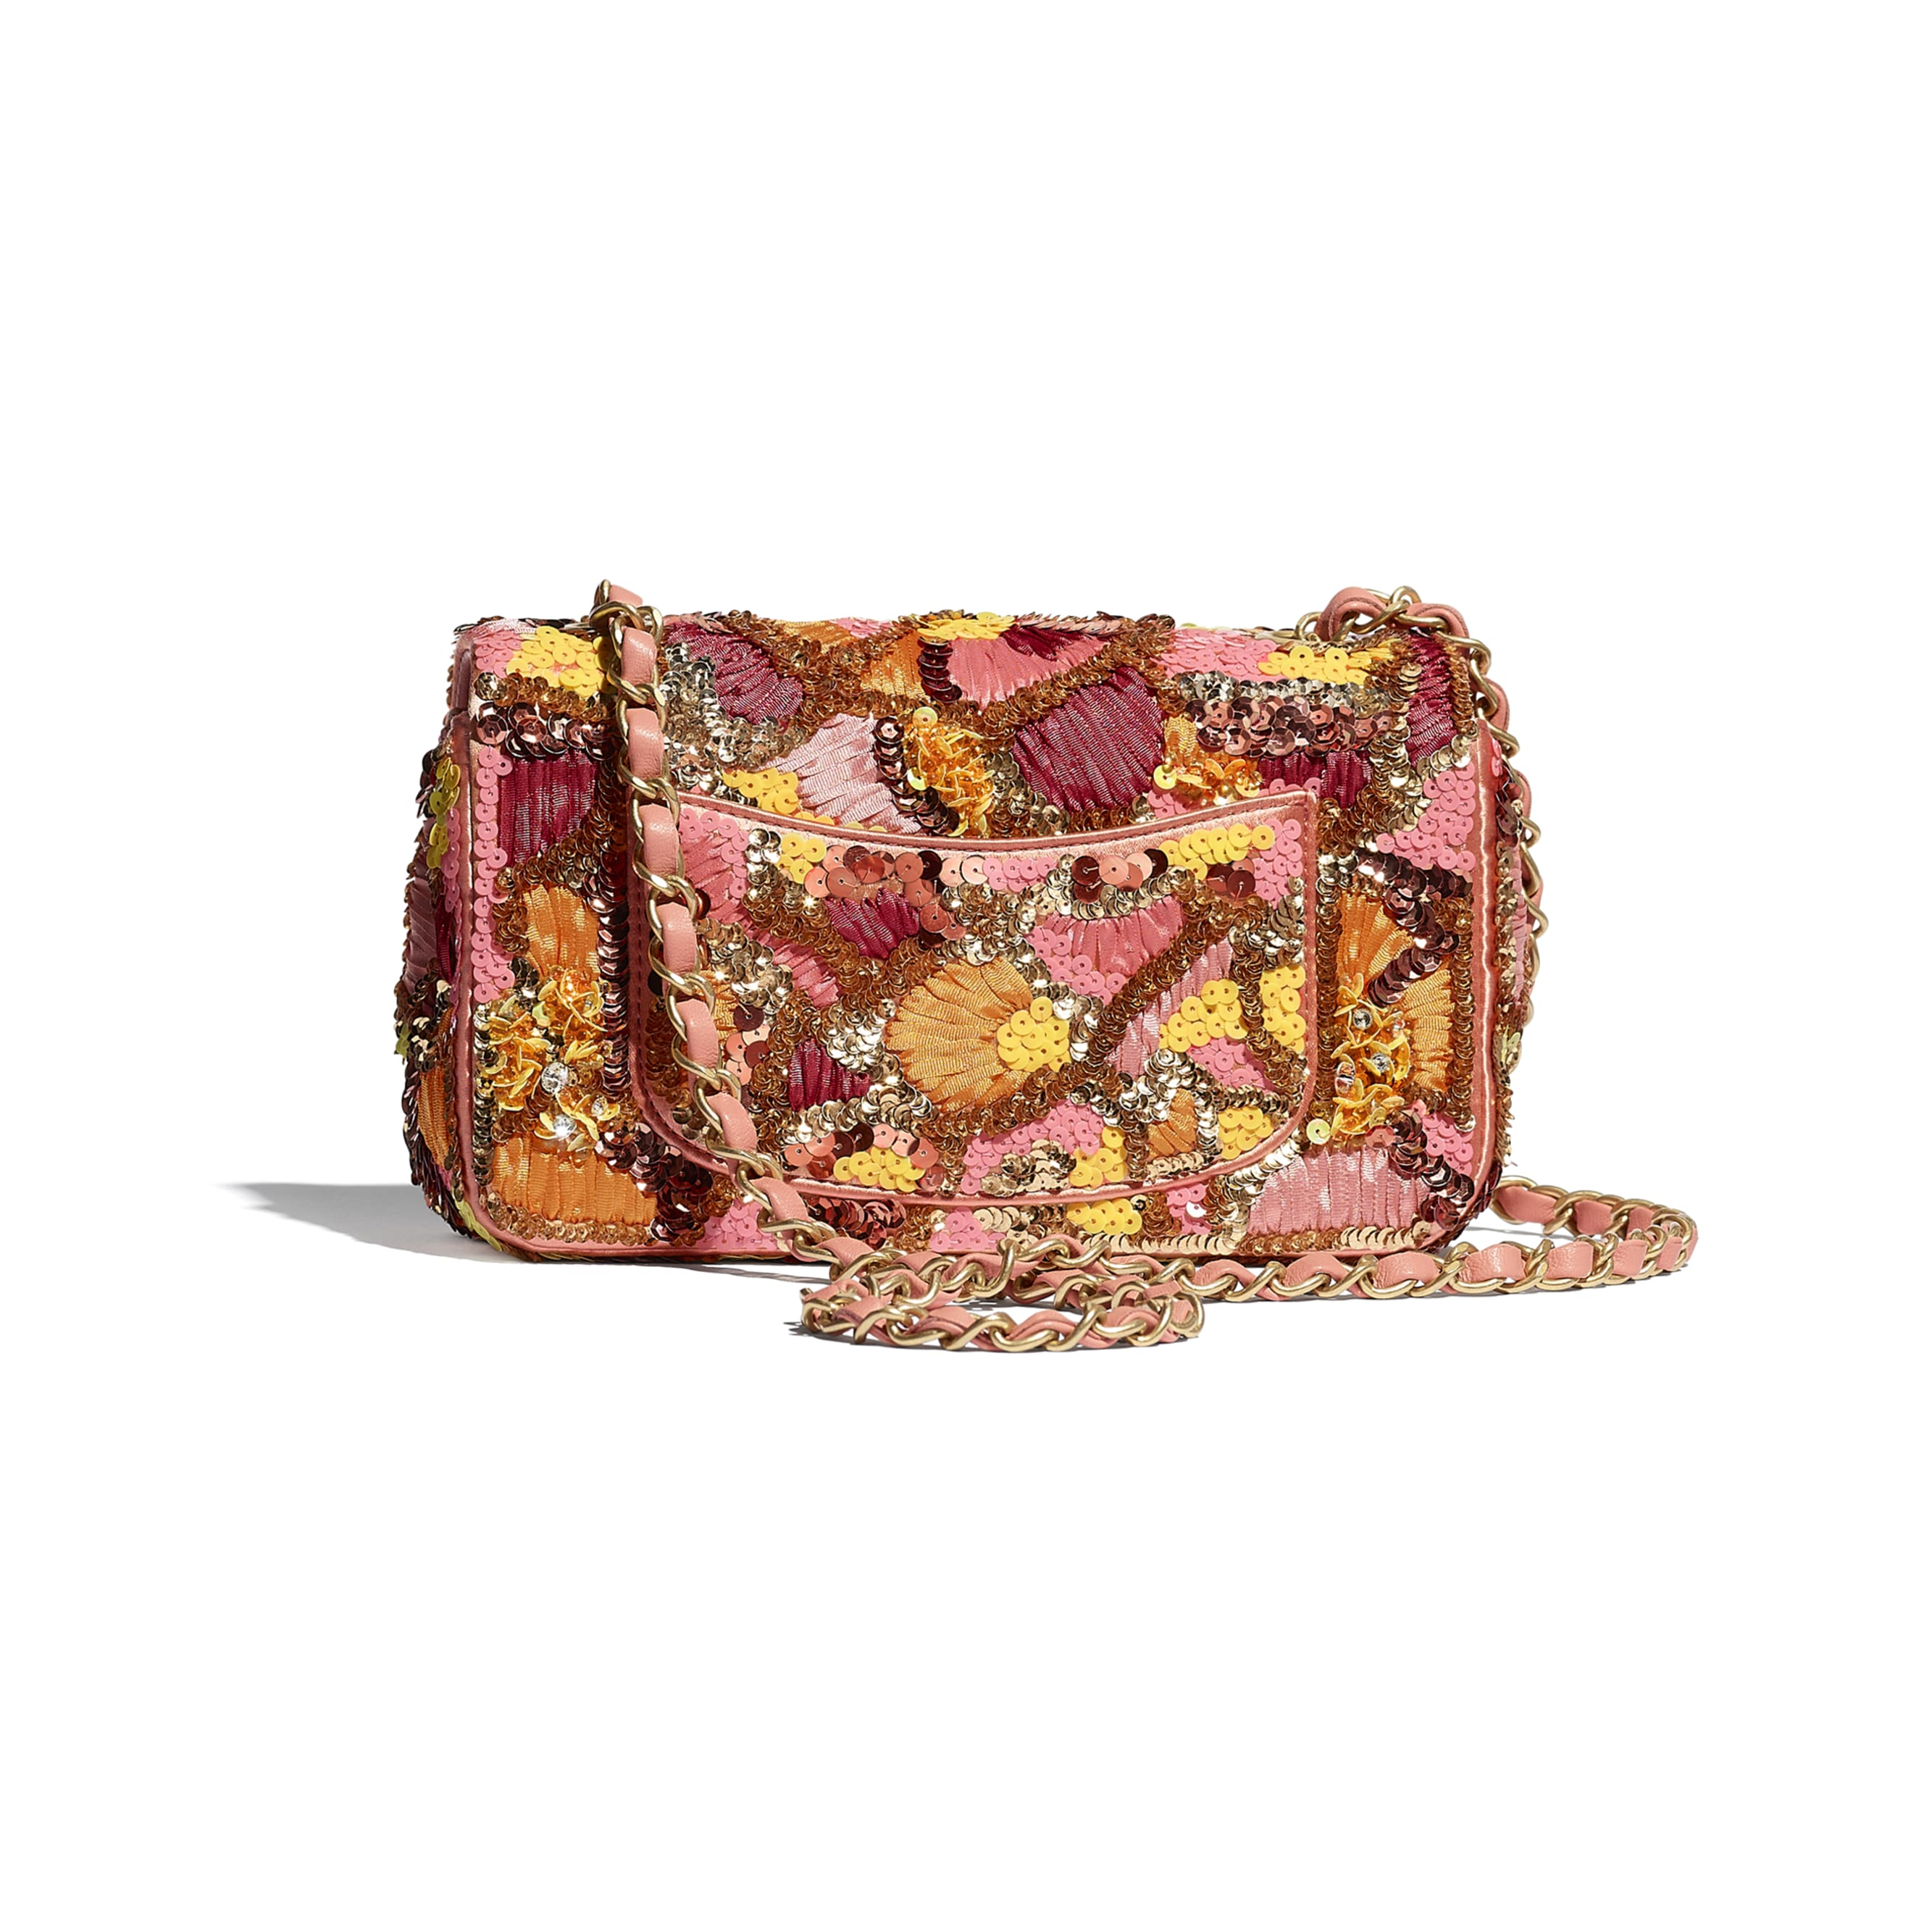 Mini Flap Bag - Pink, White, Yellow & Orange - Sequins, Mixed Fibers, Glass Pearls, Lambskin & Gold-Tone Metal - CHANEL - Alternative view - see standard sized version